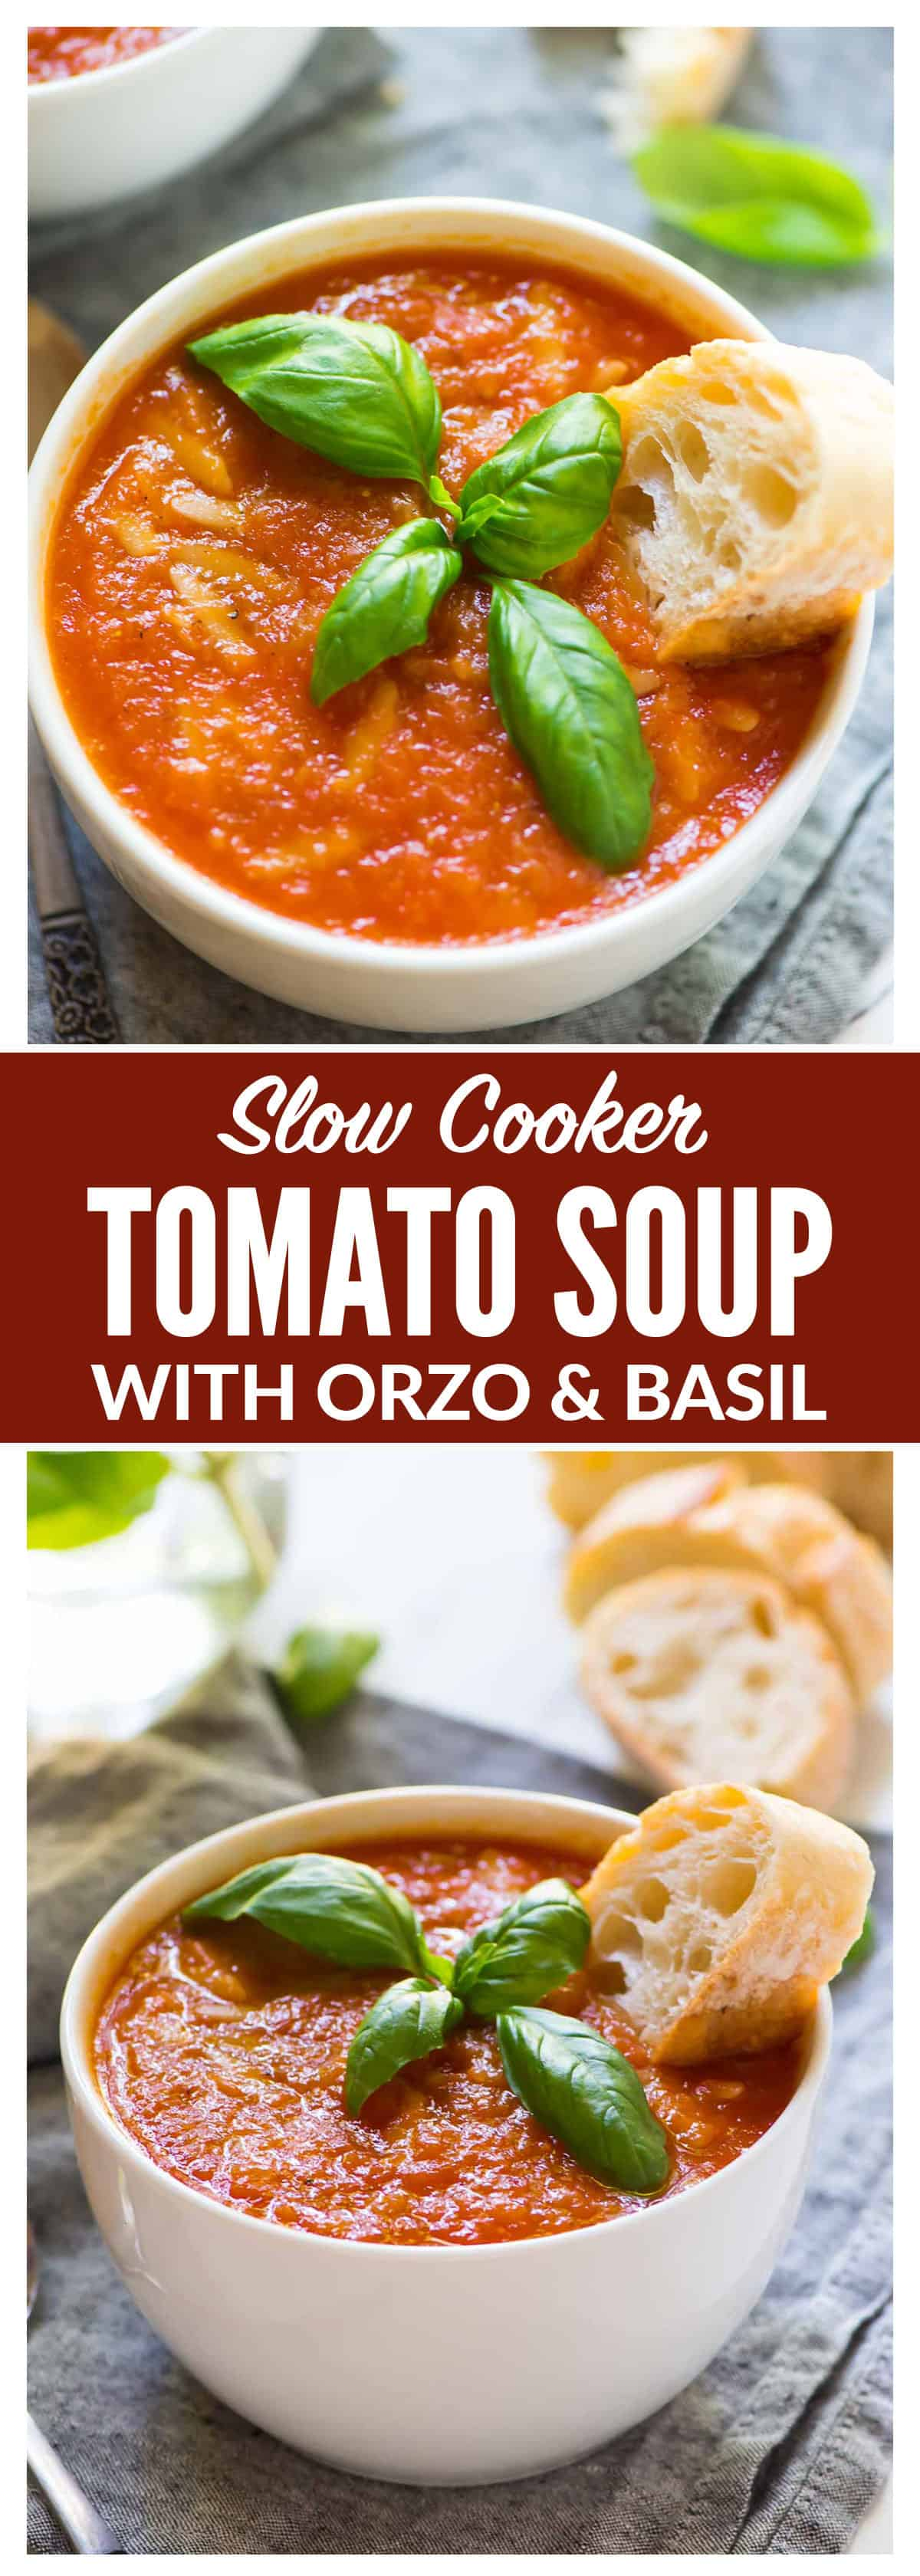 Crock pot tomato soupis a creamy,healthy low calorie soup that is packed with flavor. This slow cooker tomato soup recipe preps in just 10 minutes for a comfort food meal you will love. #crockpot #slowcooker #soup #healthyrecipe